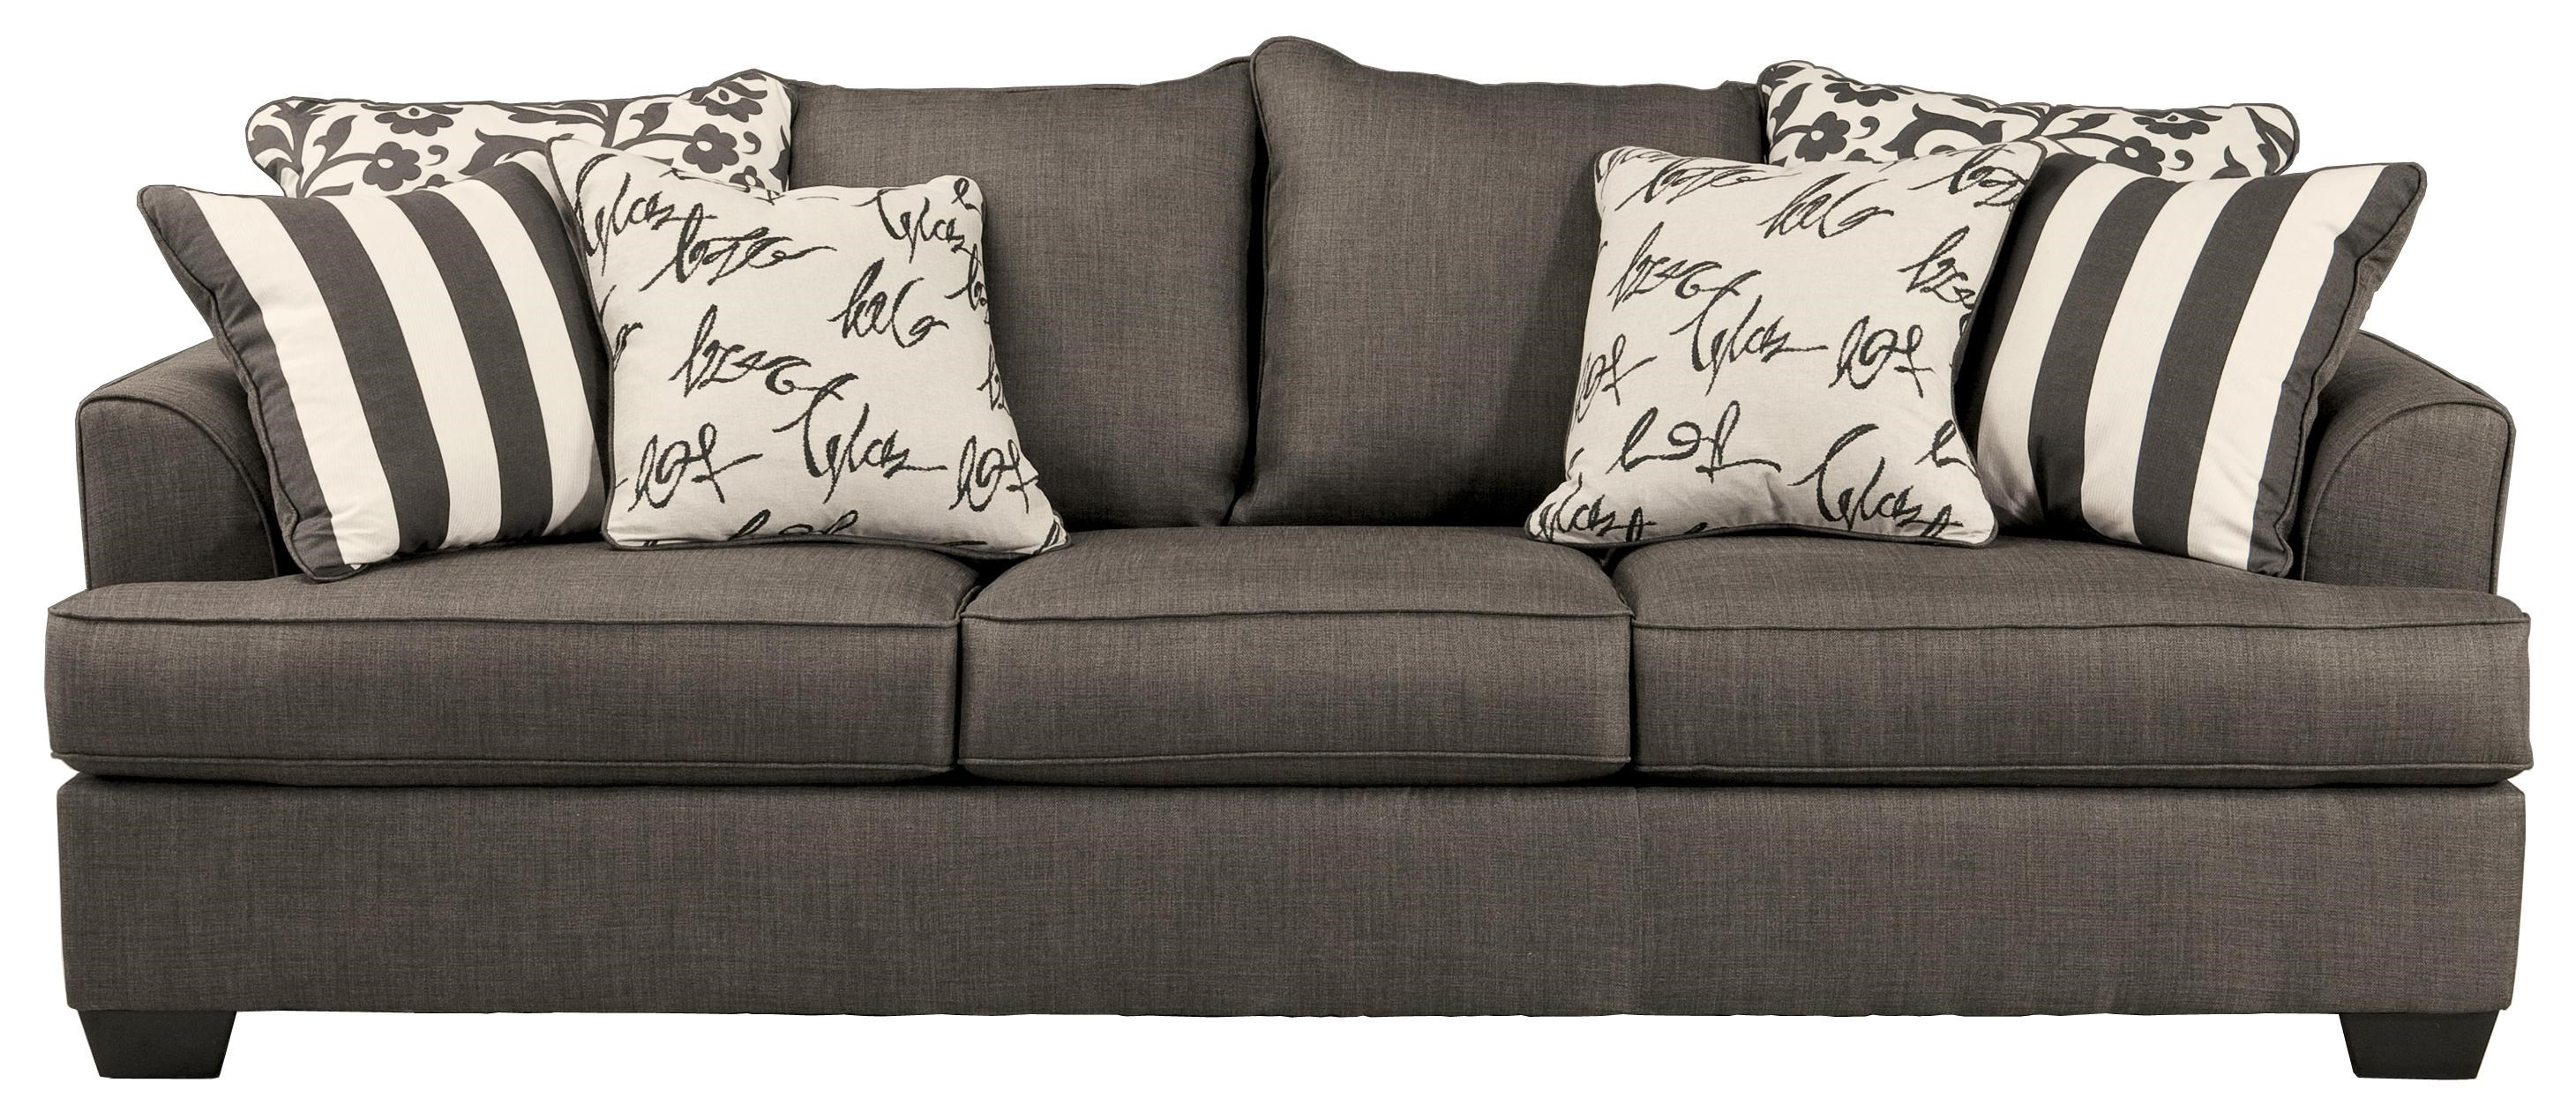 Signature Design By Ashley Levon   Charcoal Queen Sofa Sleeper With Memory  Foam Mattress